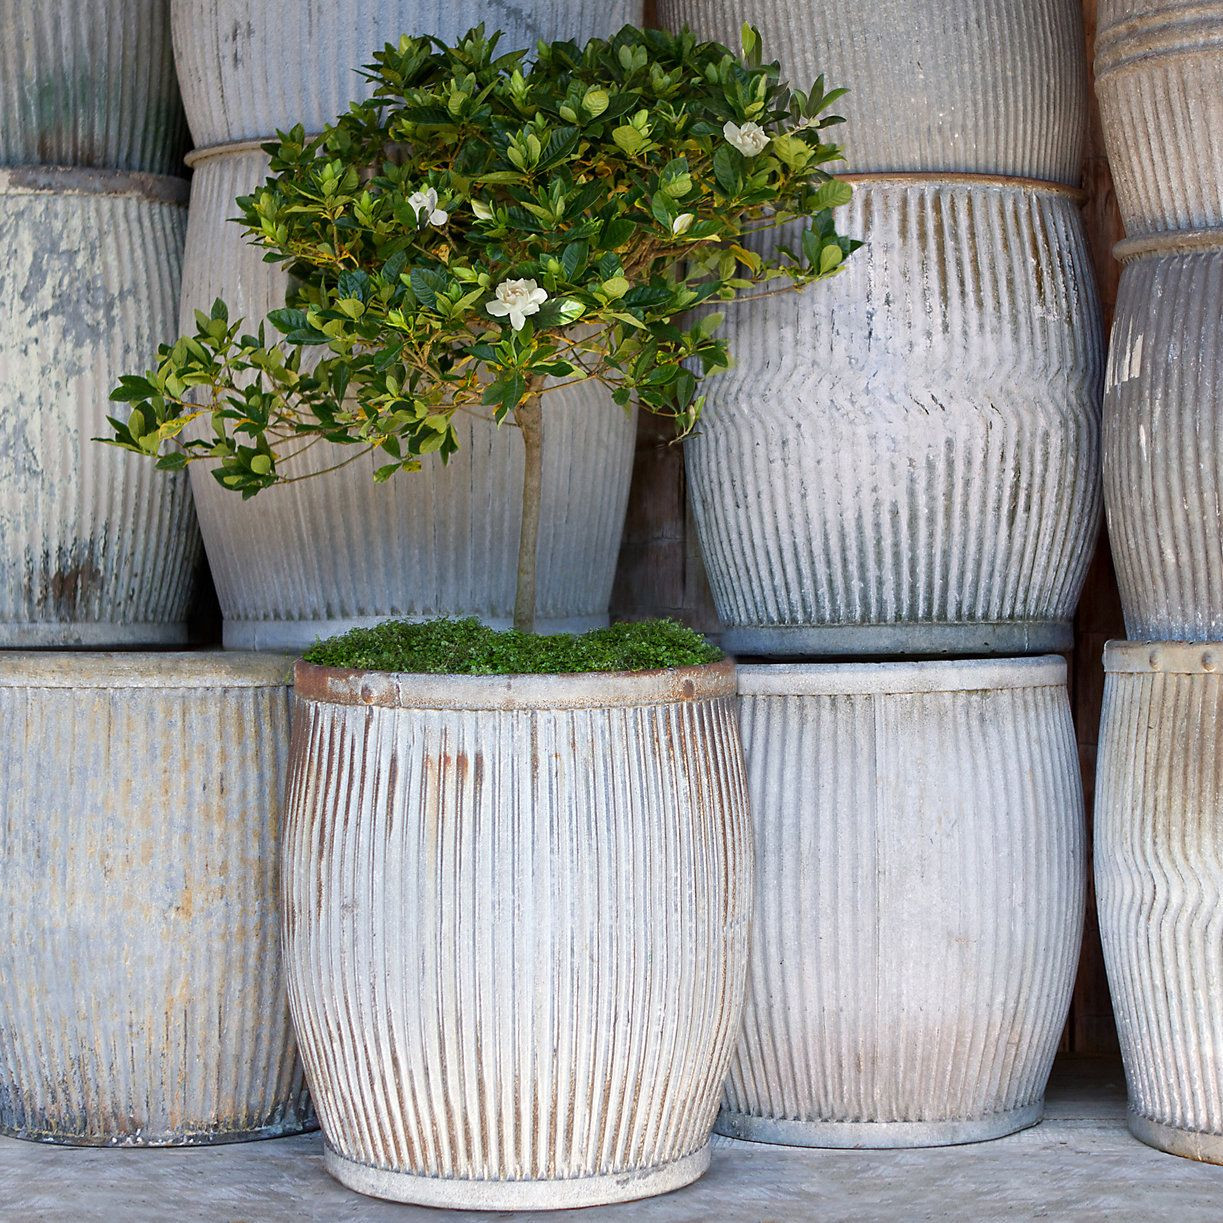 Best ideas about Large Outdoor Planters . Save or Pin Vintage Zinc Barrel Now.